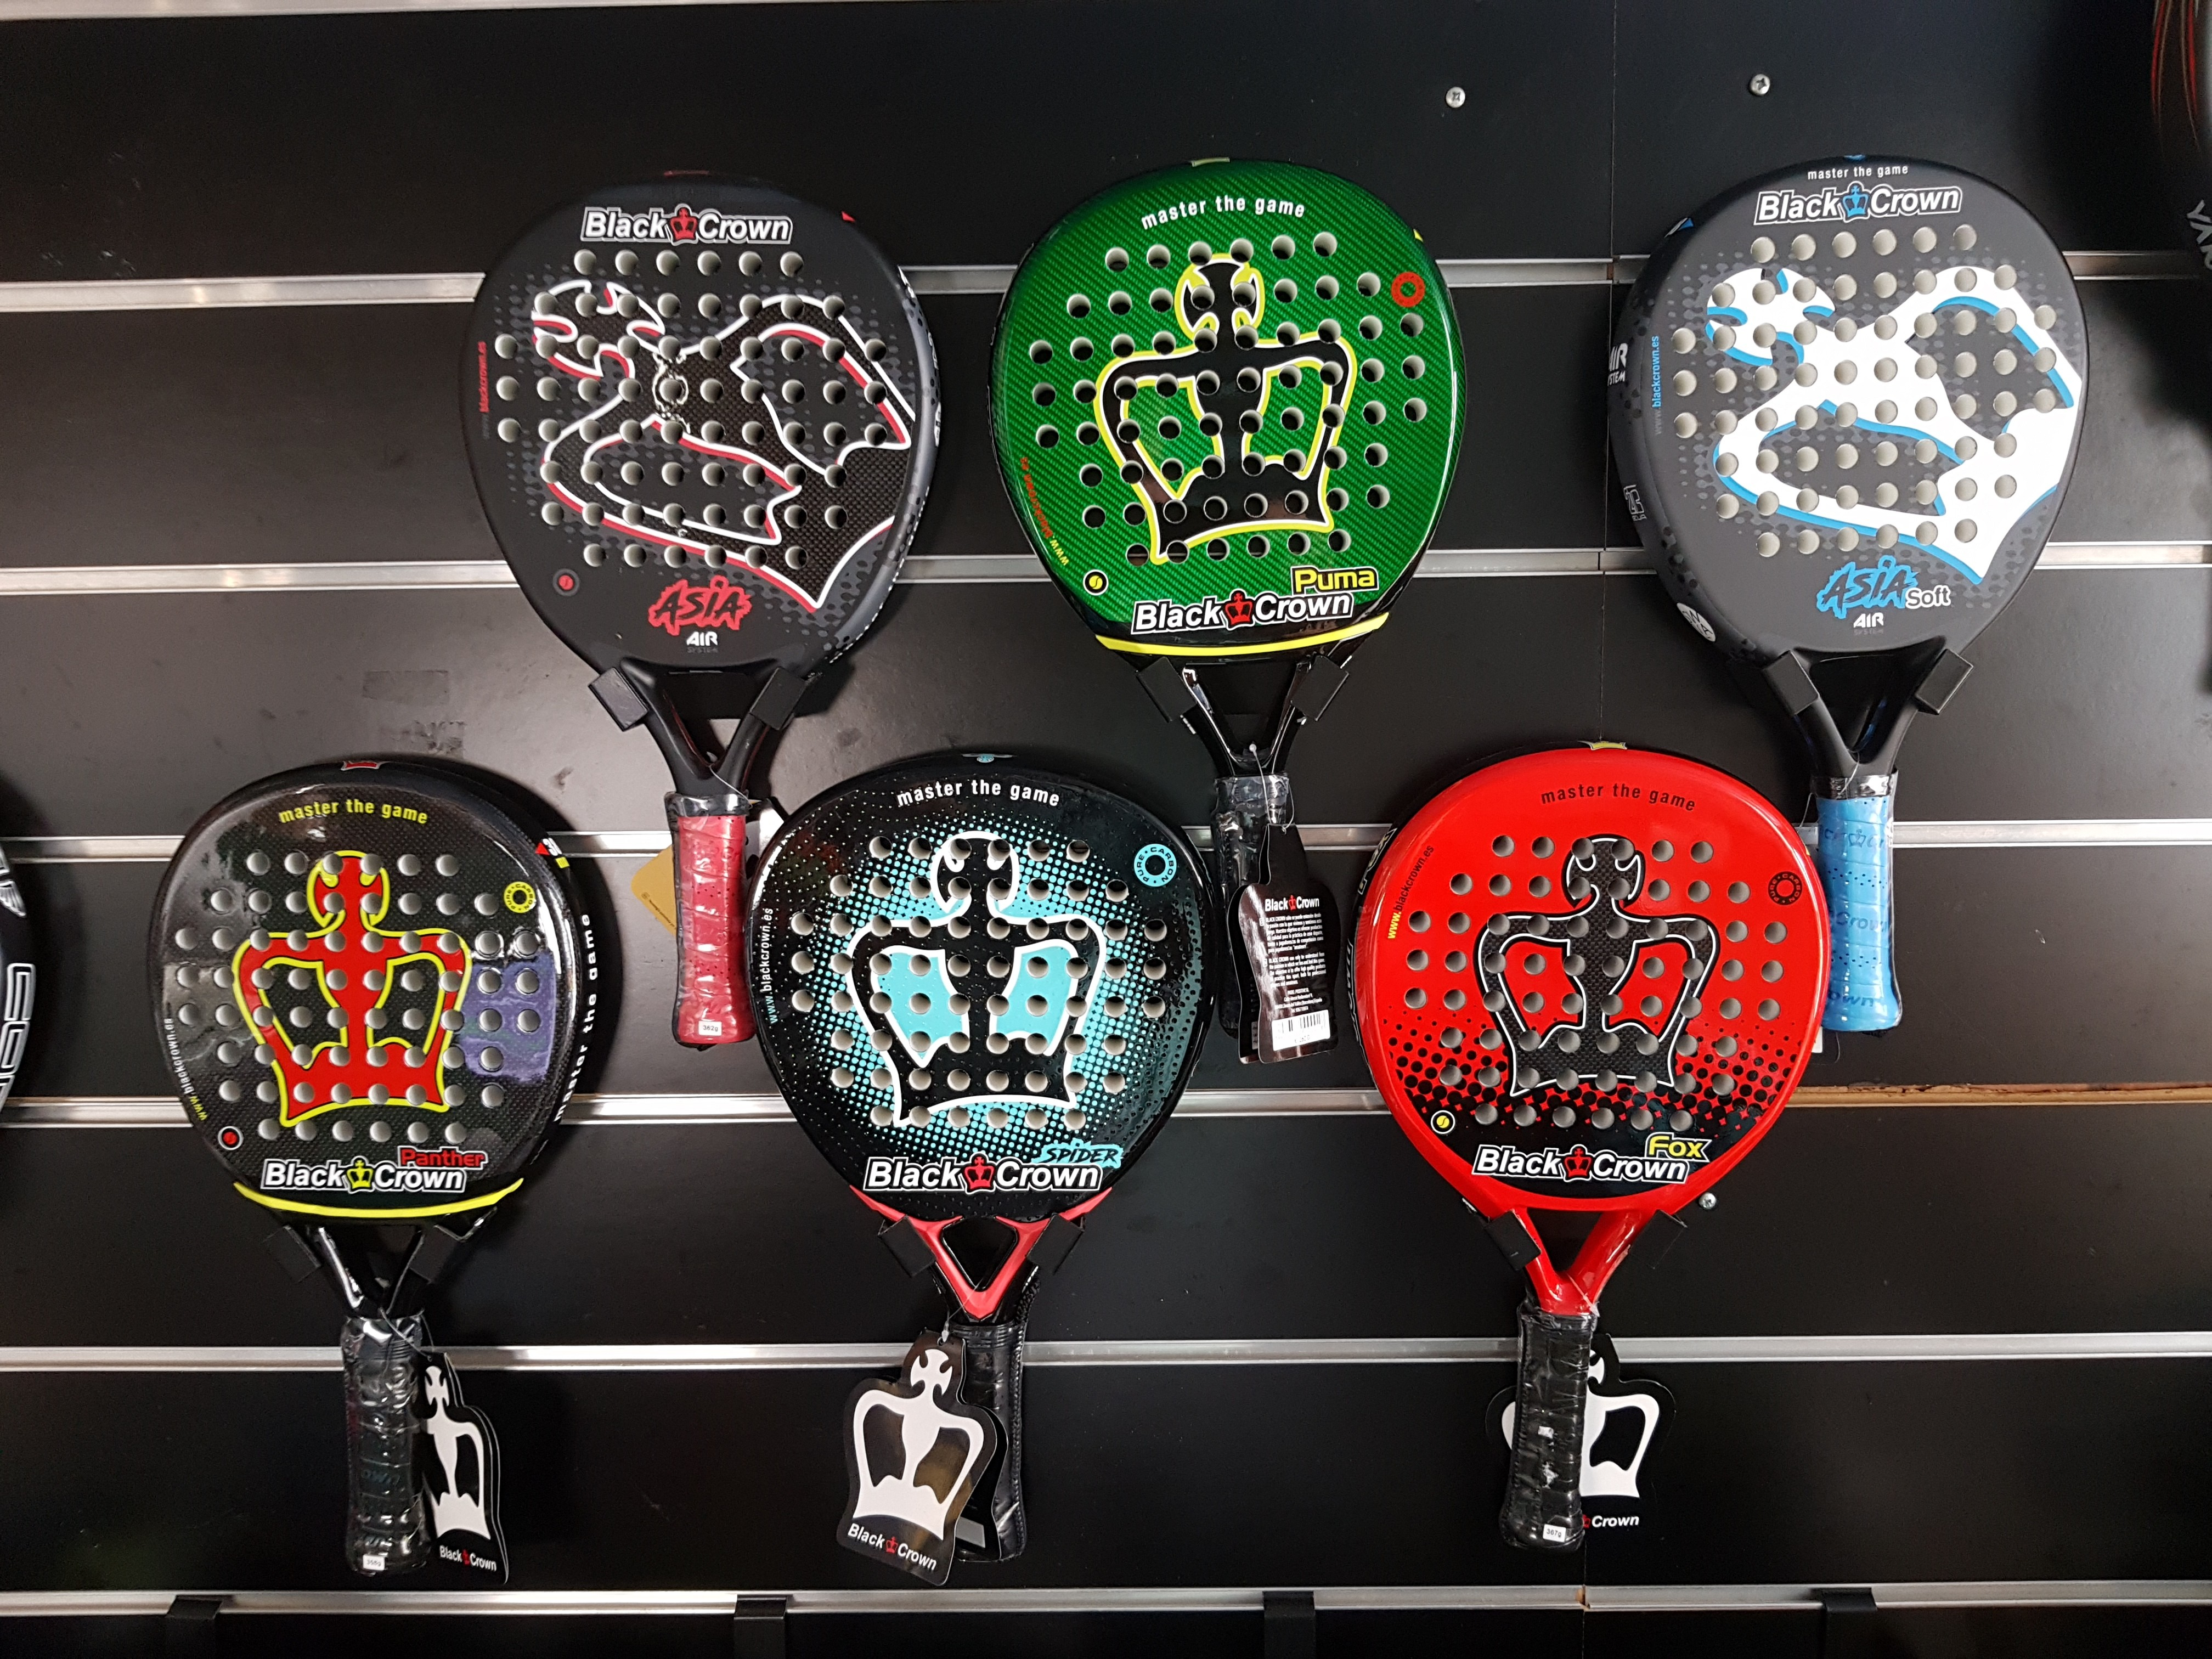 http://fusionpadel.com/22-black-crown